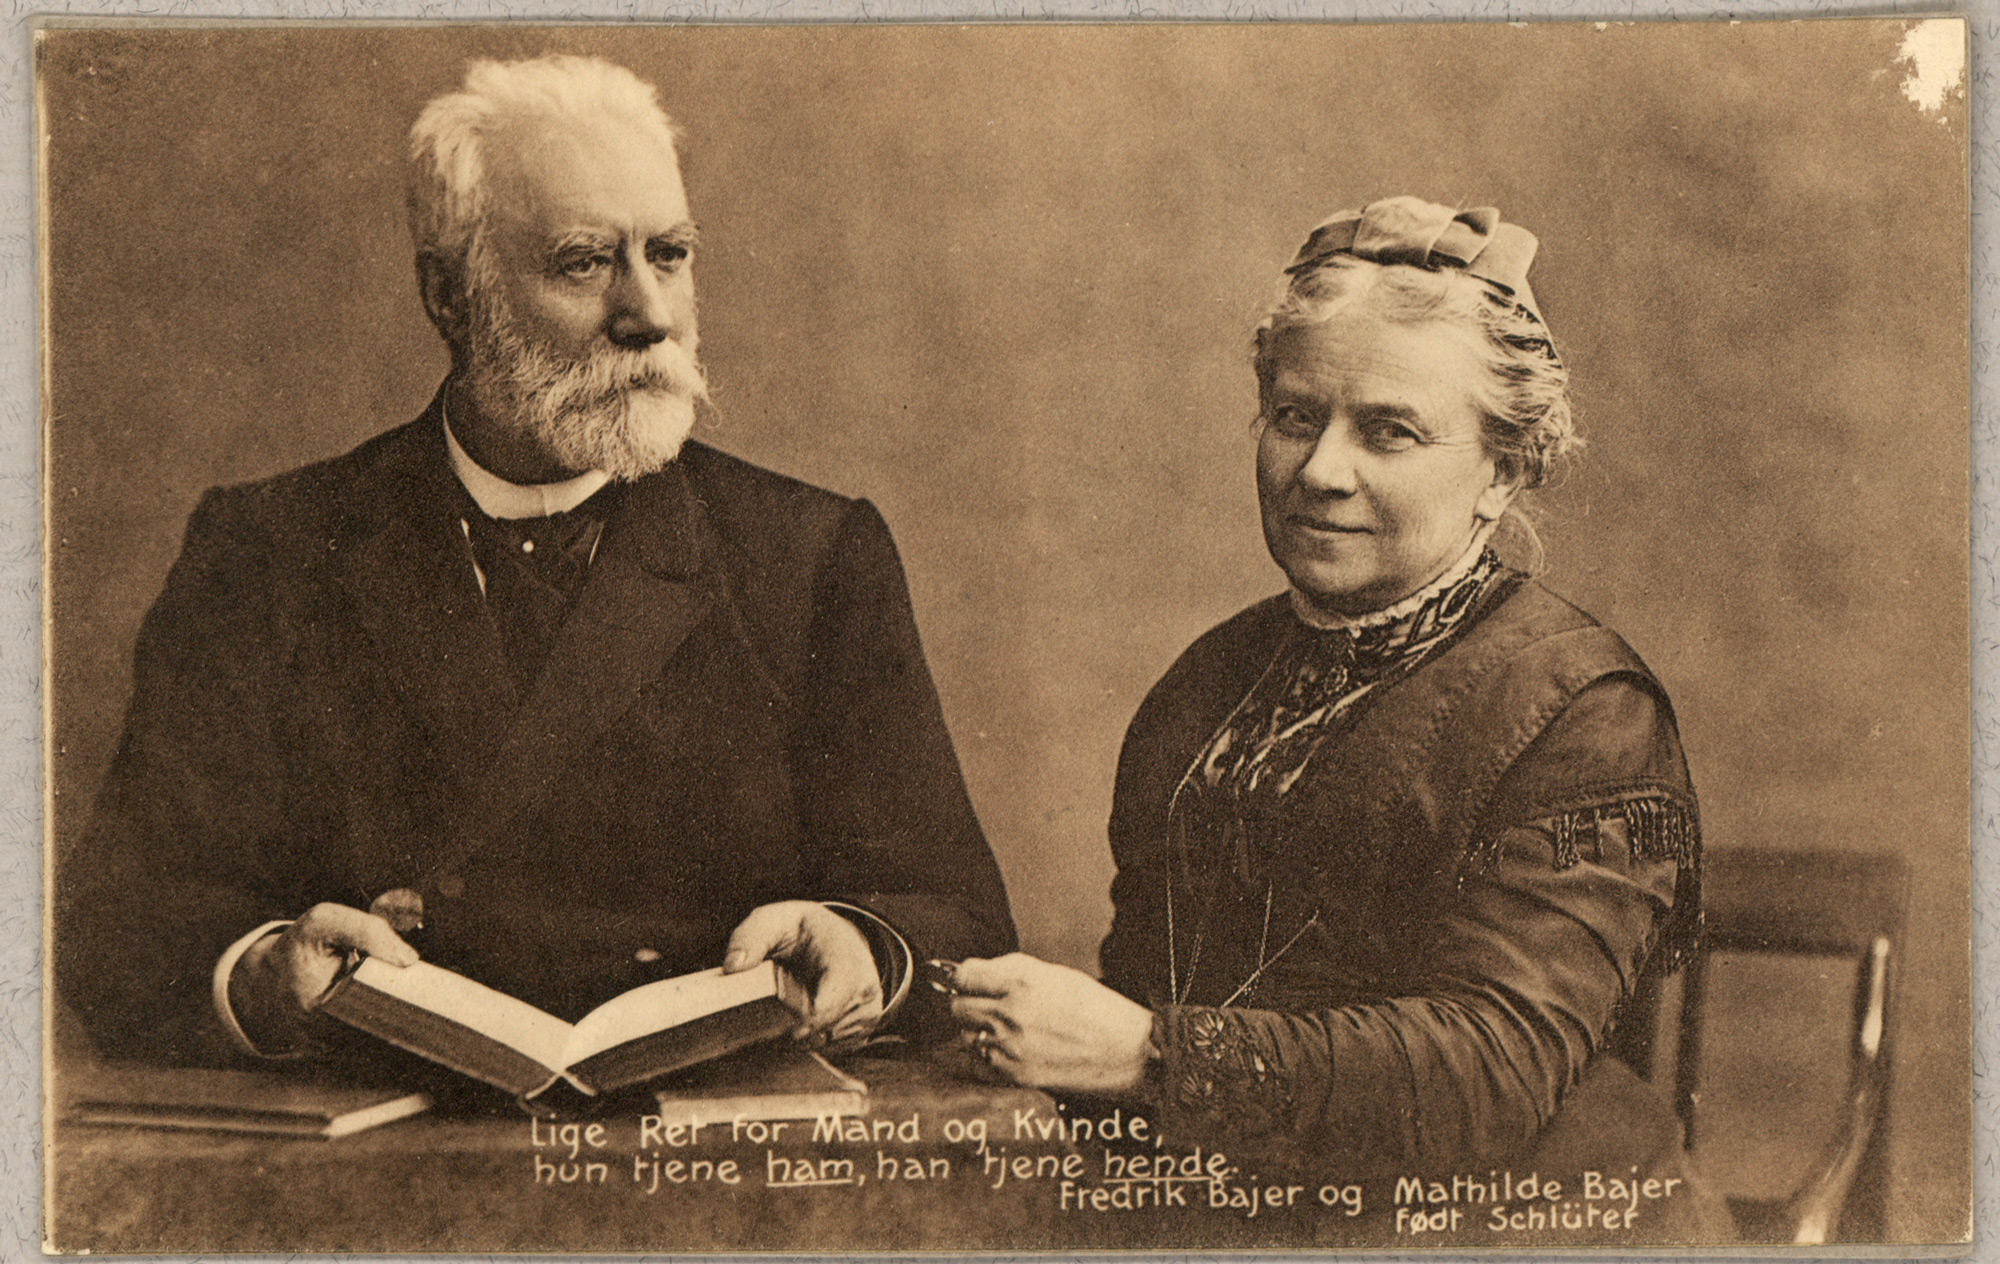 Frederik and Mathilde Bajer